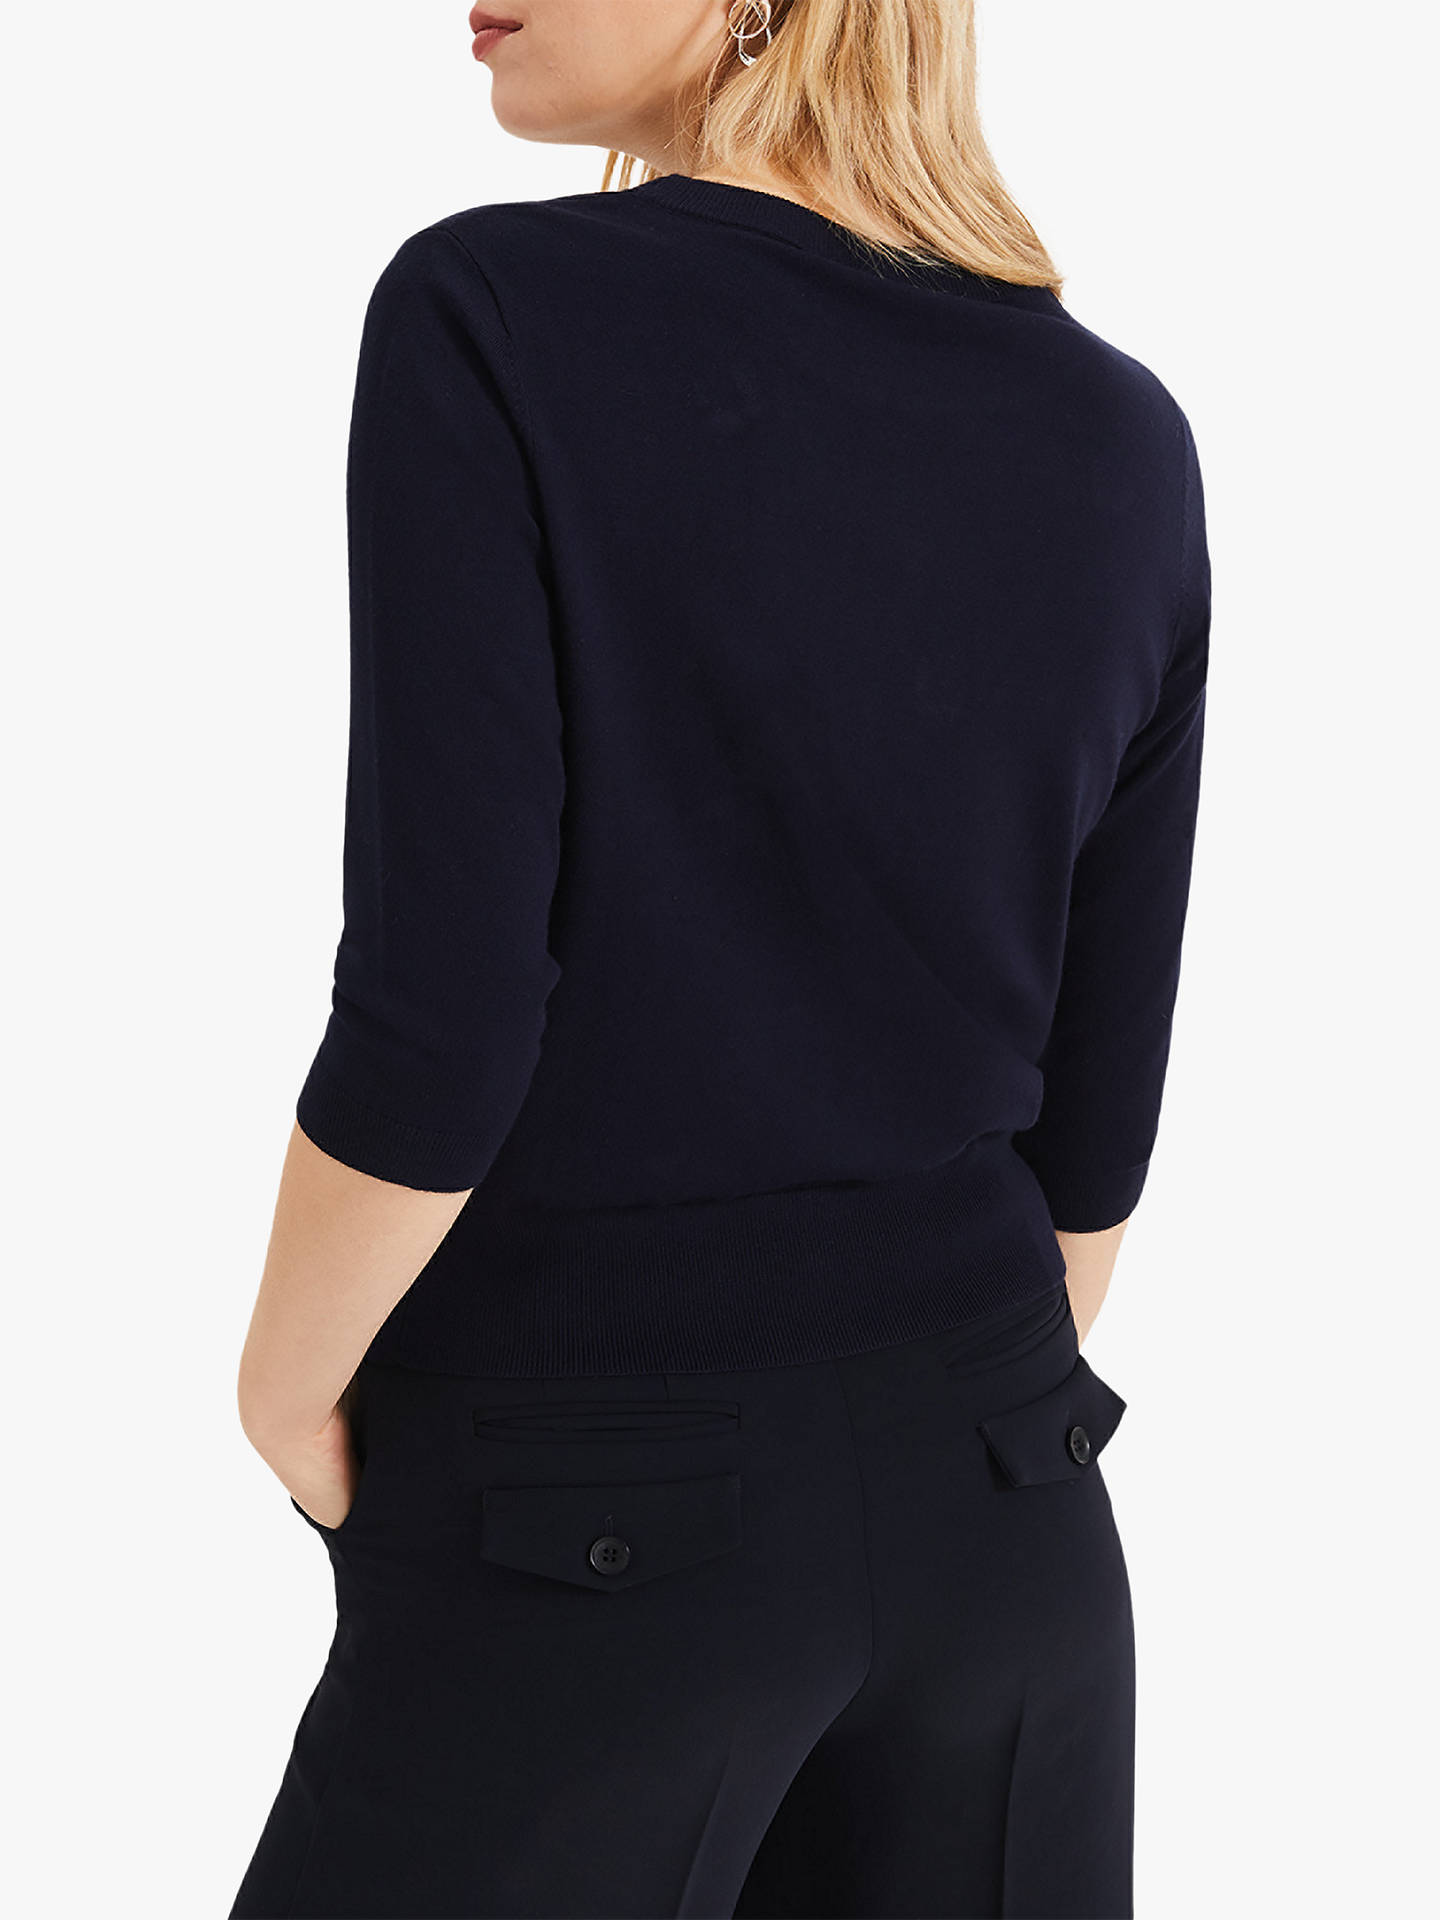 Buy Phase Eight Bayleigh Bumblebee Knit Jumper, Navy, 12 Online at johnlewis.com